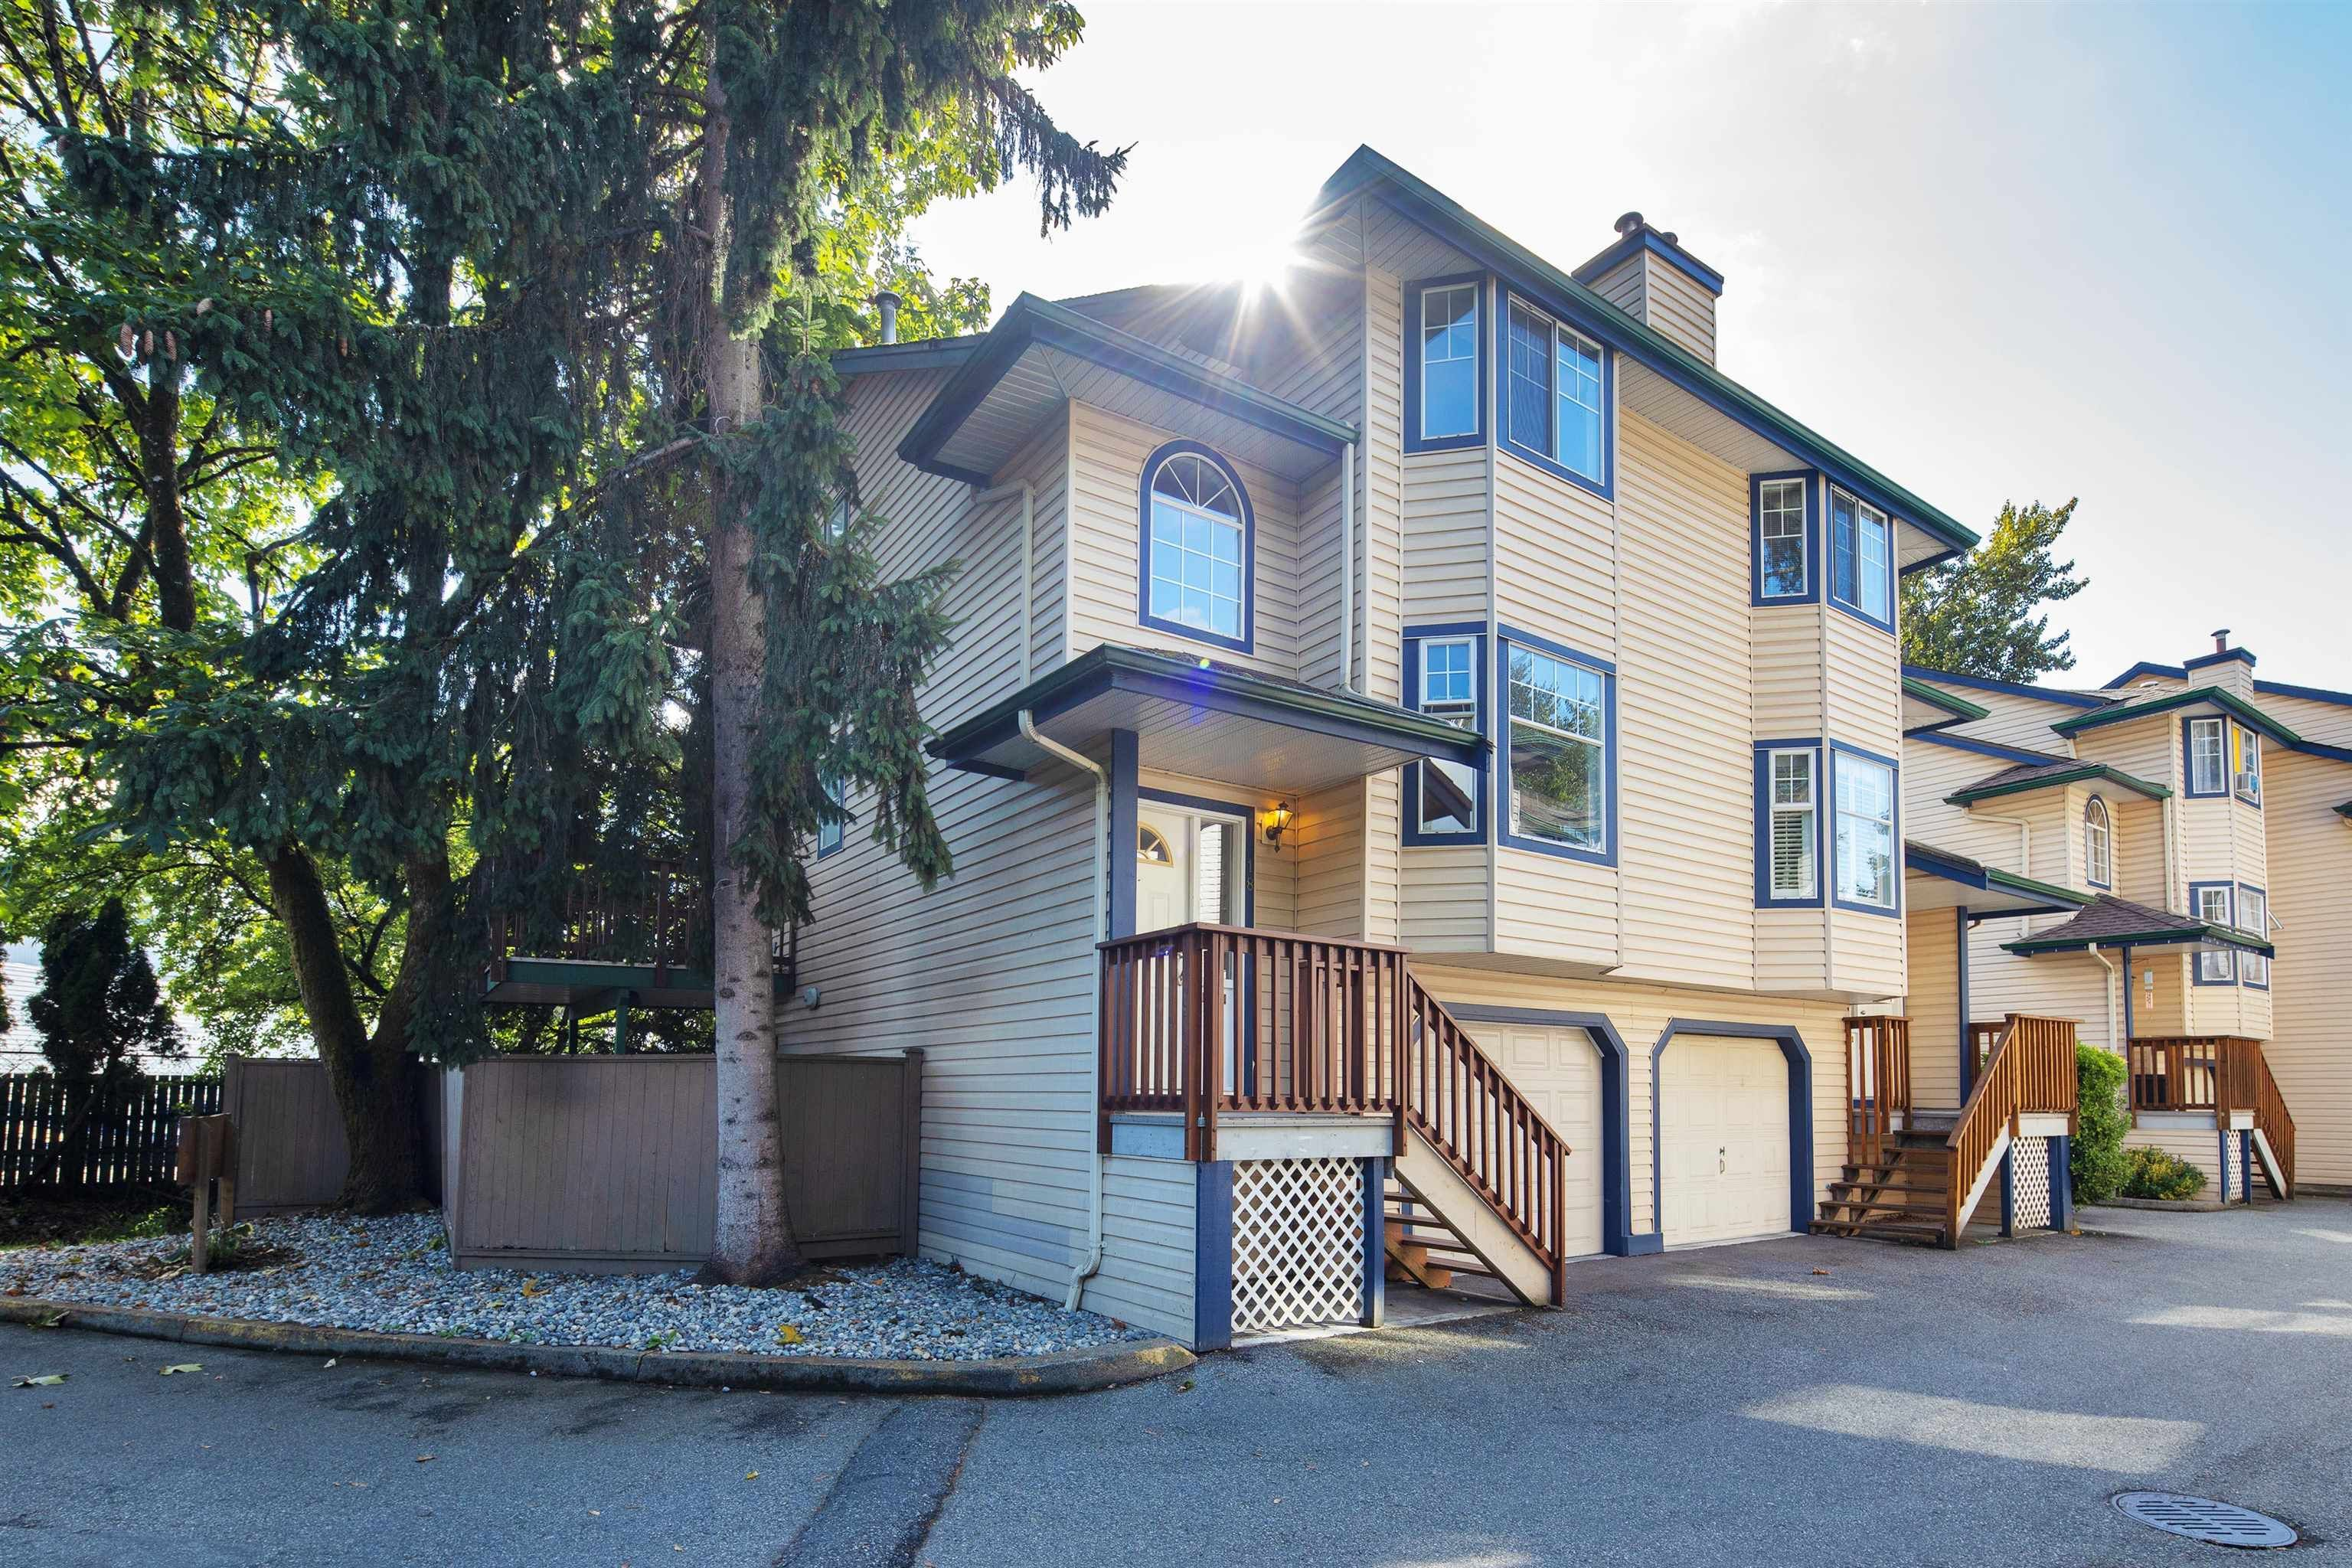 """Main Photo: 18 2525 SHAFTSBURY Place in Port Coquitlam: Woodland Acres PQ Townhouse for sale in """"SHAFTSBURY PLACE"""" : MLS®# R2618959"""